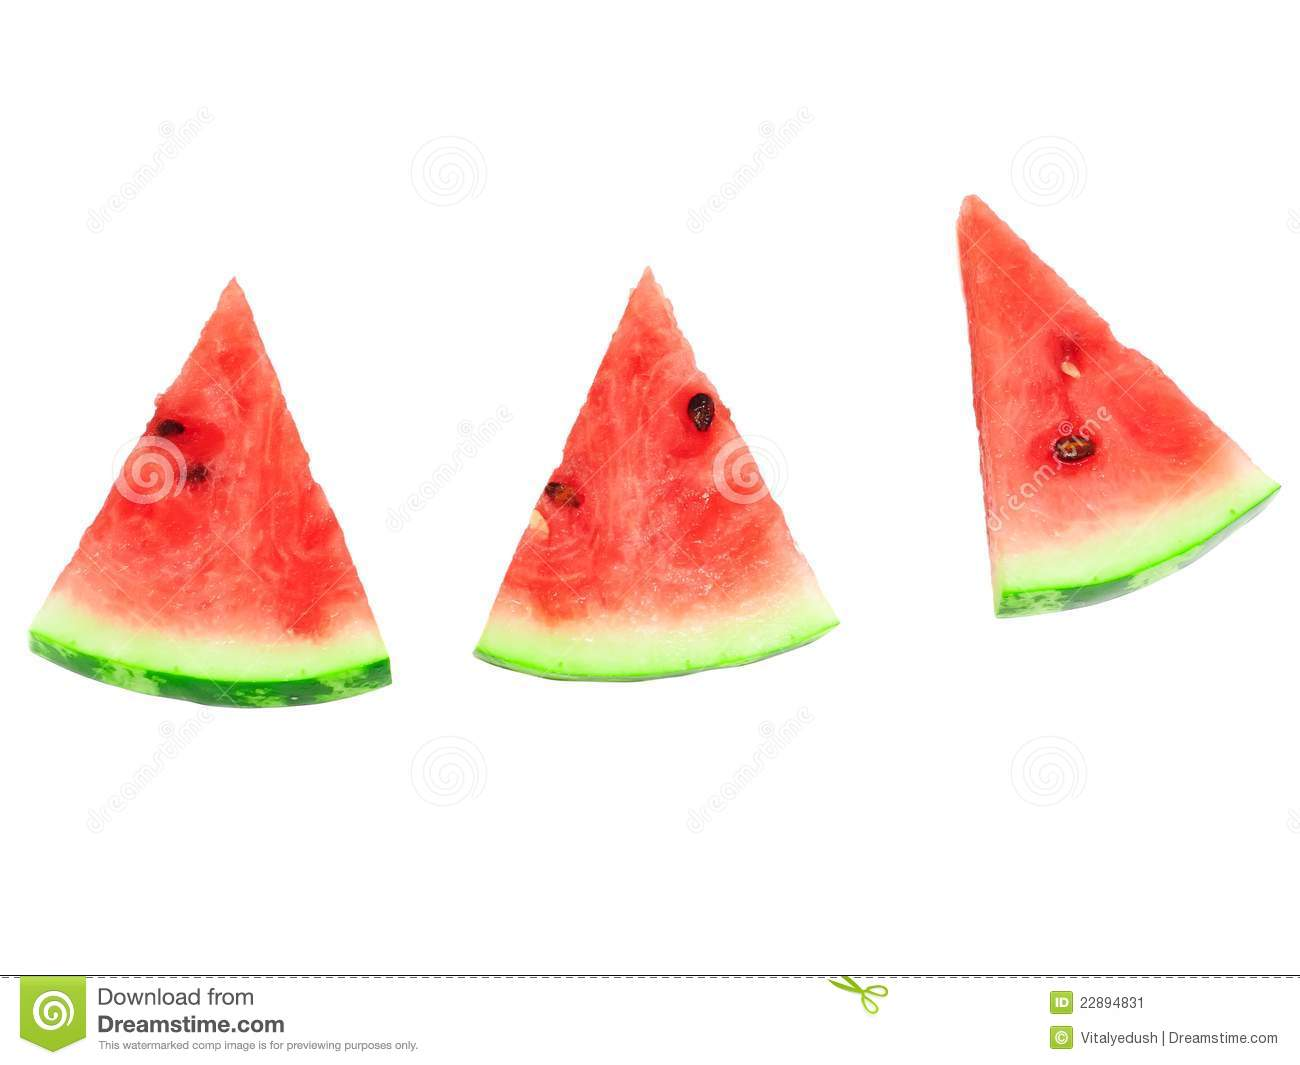 how to cut up a watermelon slices